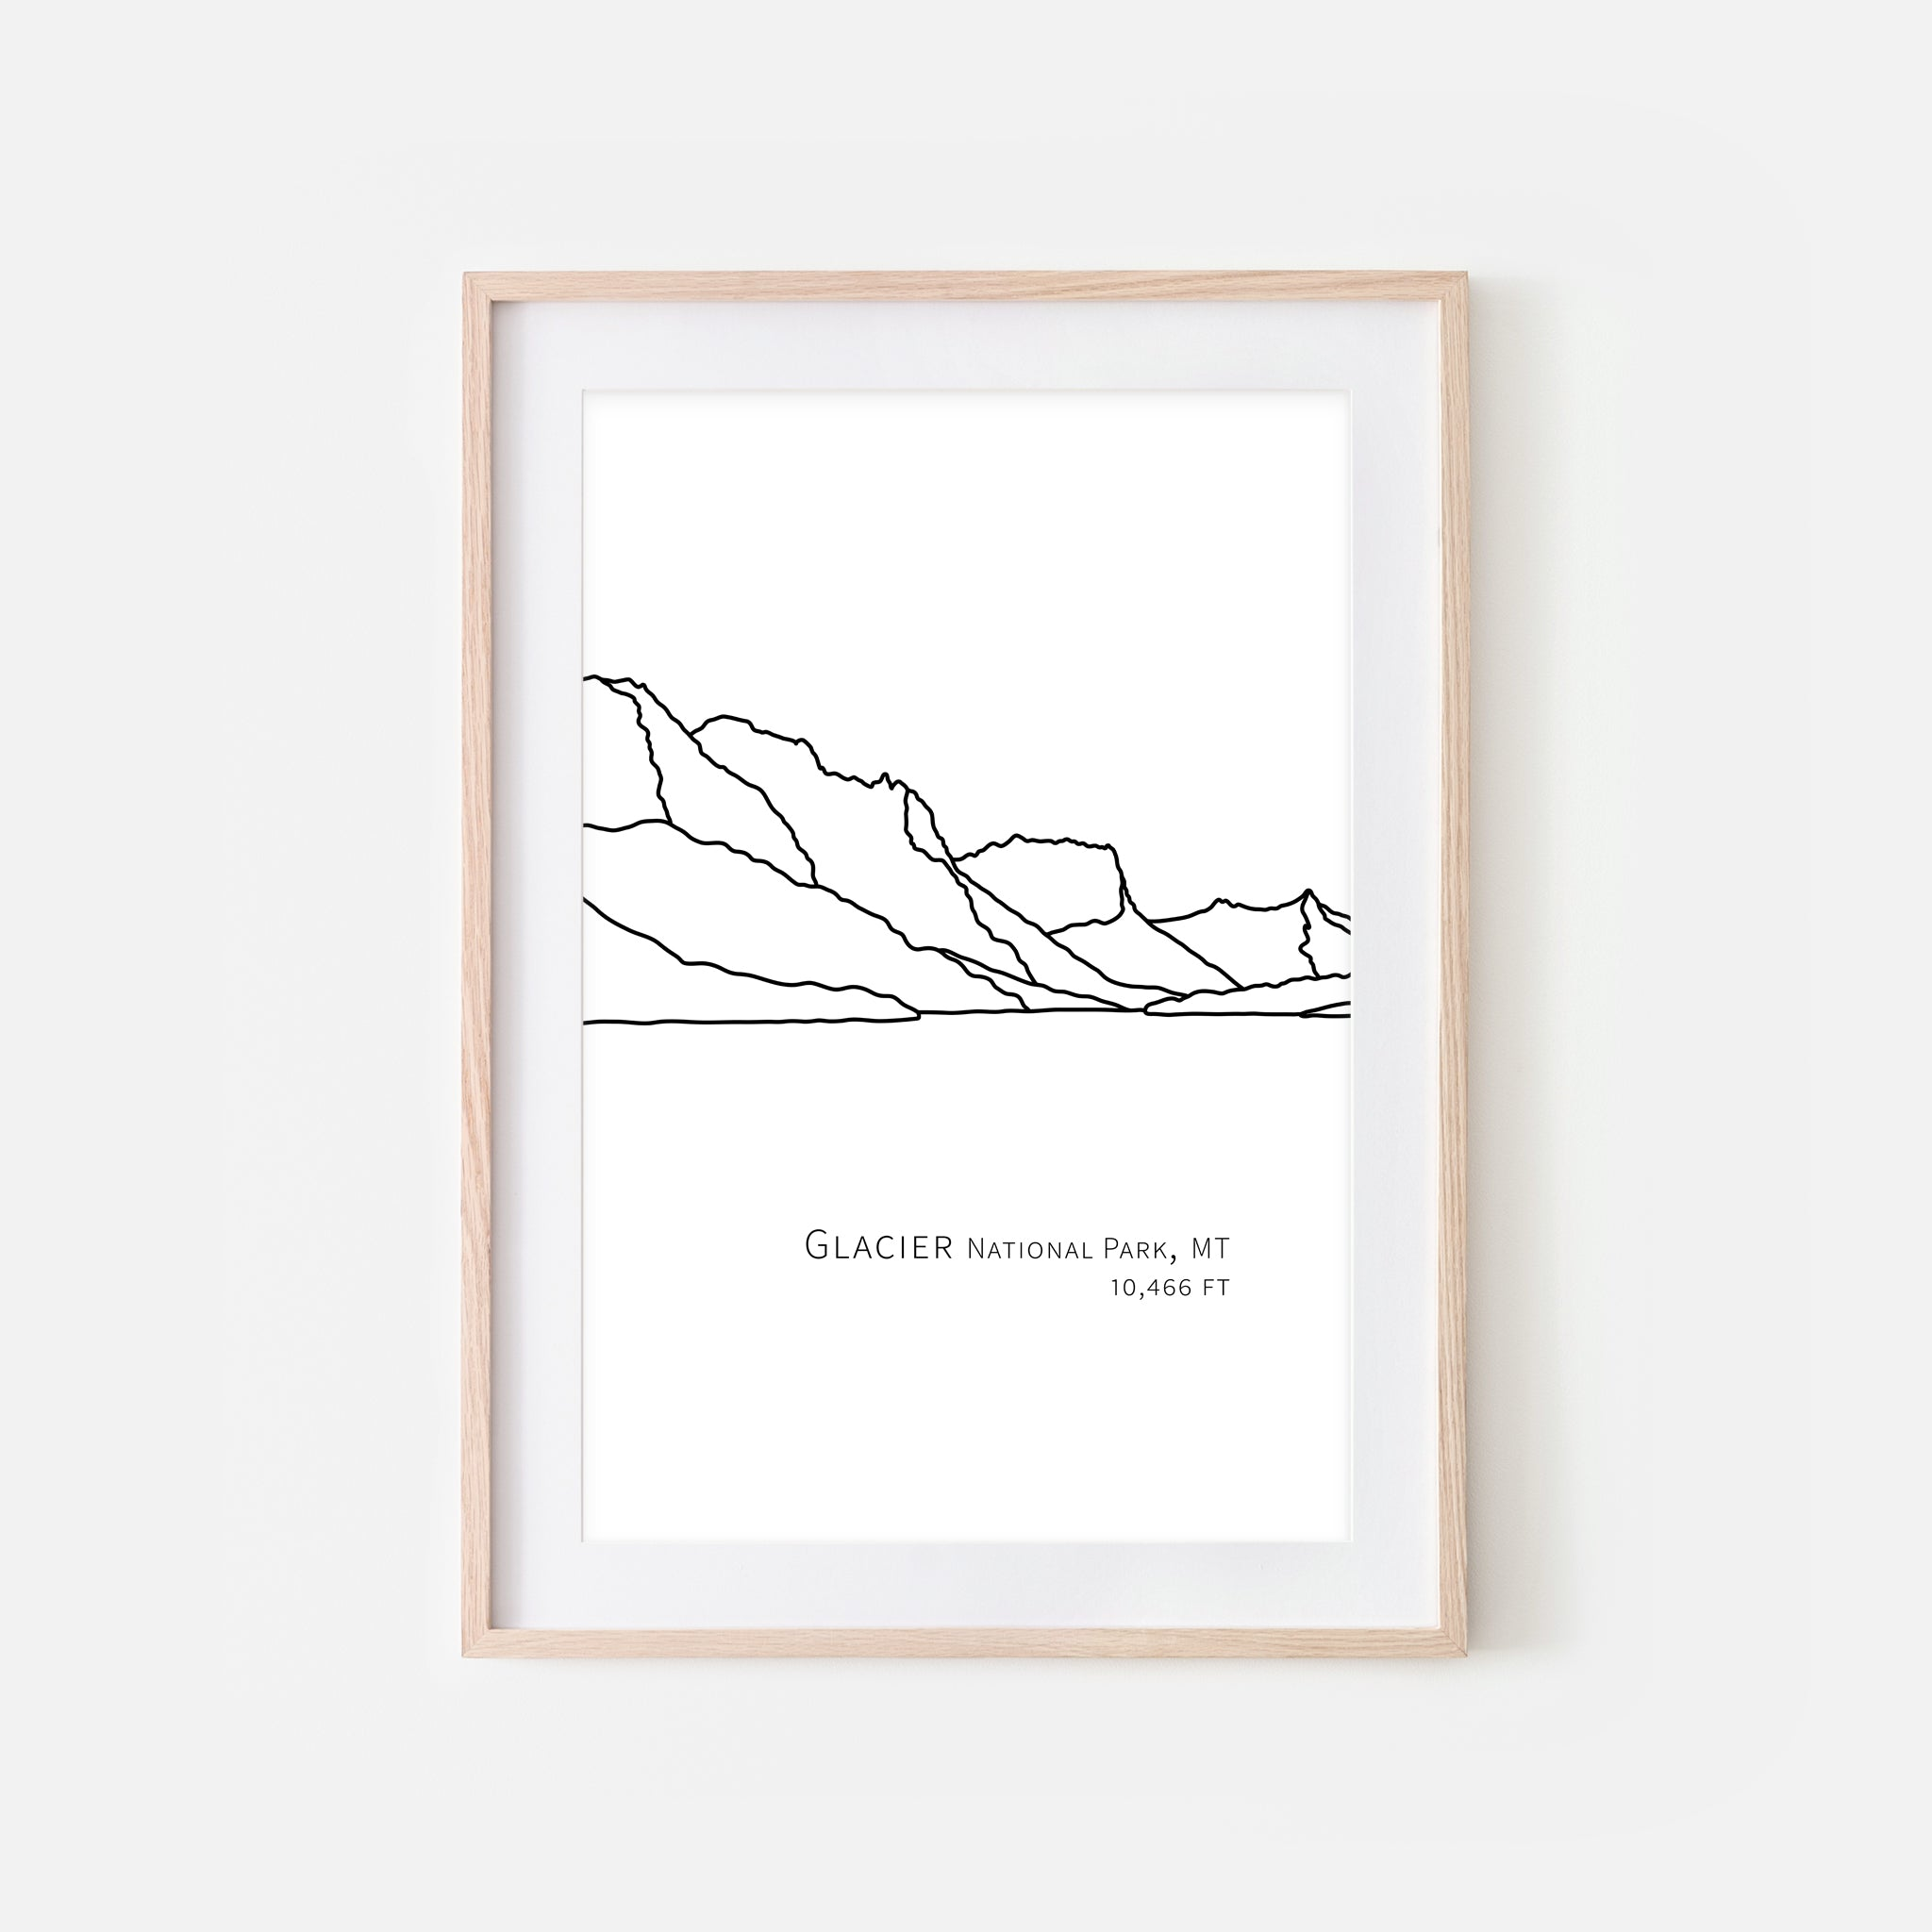 Glacier National Park Montana MT USA Wall Art Print - Abstract Minimalist Landscape Contour One Line Drawing - Black and White Home Decor Mountain Outdoors Hiking Decor - Large Small Shipped Paper Print or Poster - OR - Downloadable Art Print DIY Digital Printable Instant Download - By Happy Cat Prints